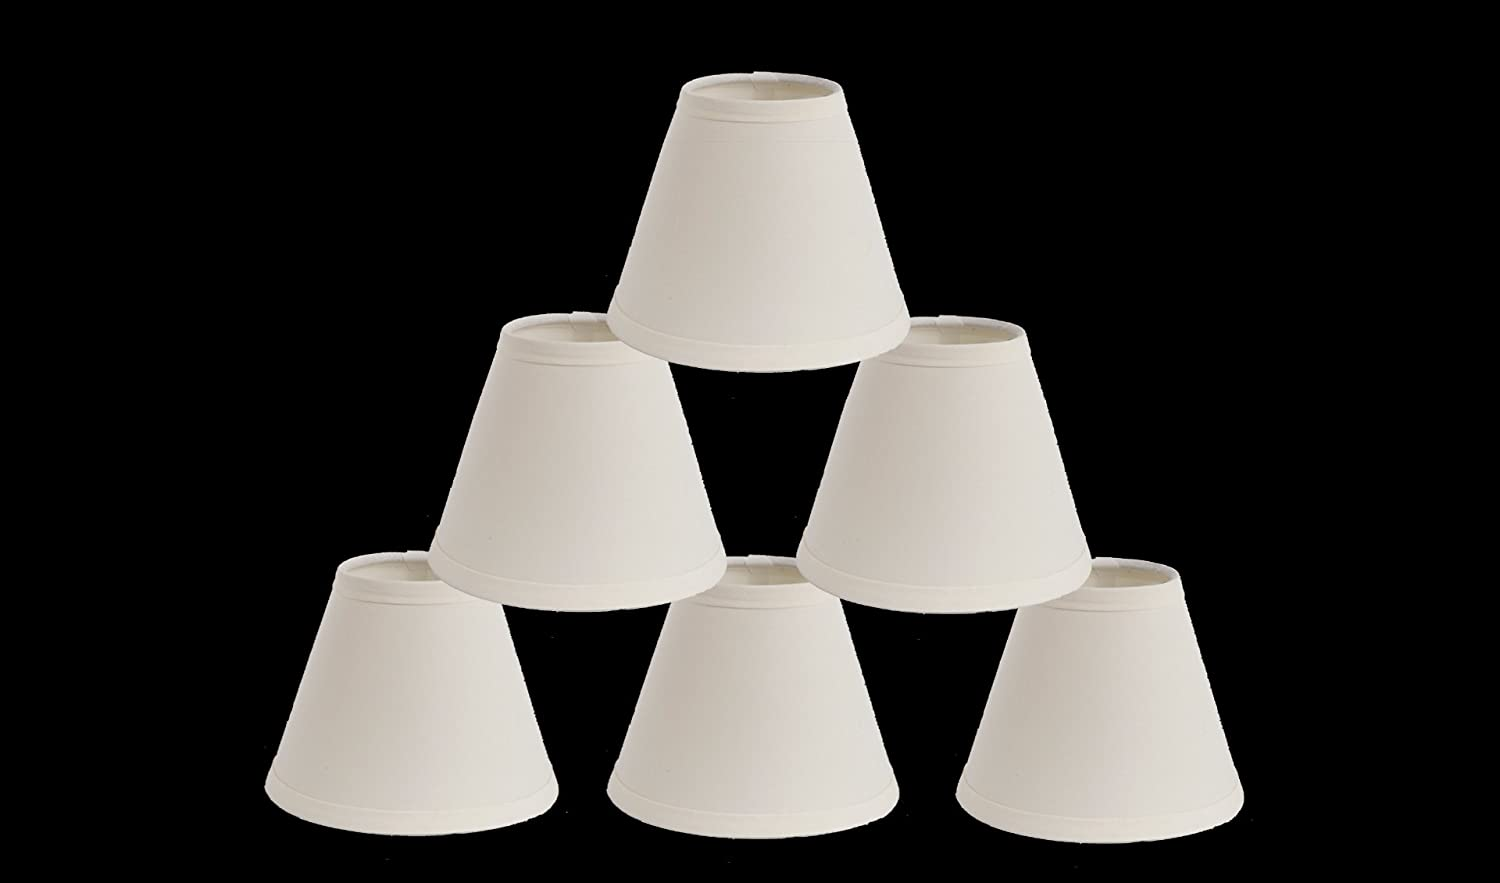 Urbanest 1100327c mini chandelier lamp shades 6 inch cotton urbanest 1100327c mini chandelier lamp shades 6 inch cotton hardback clip on eggshell set of 6 amazon arubaitofo Choice Image